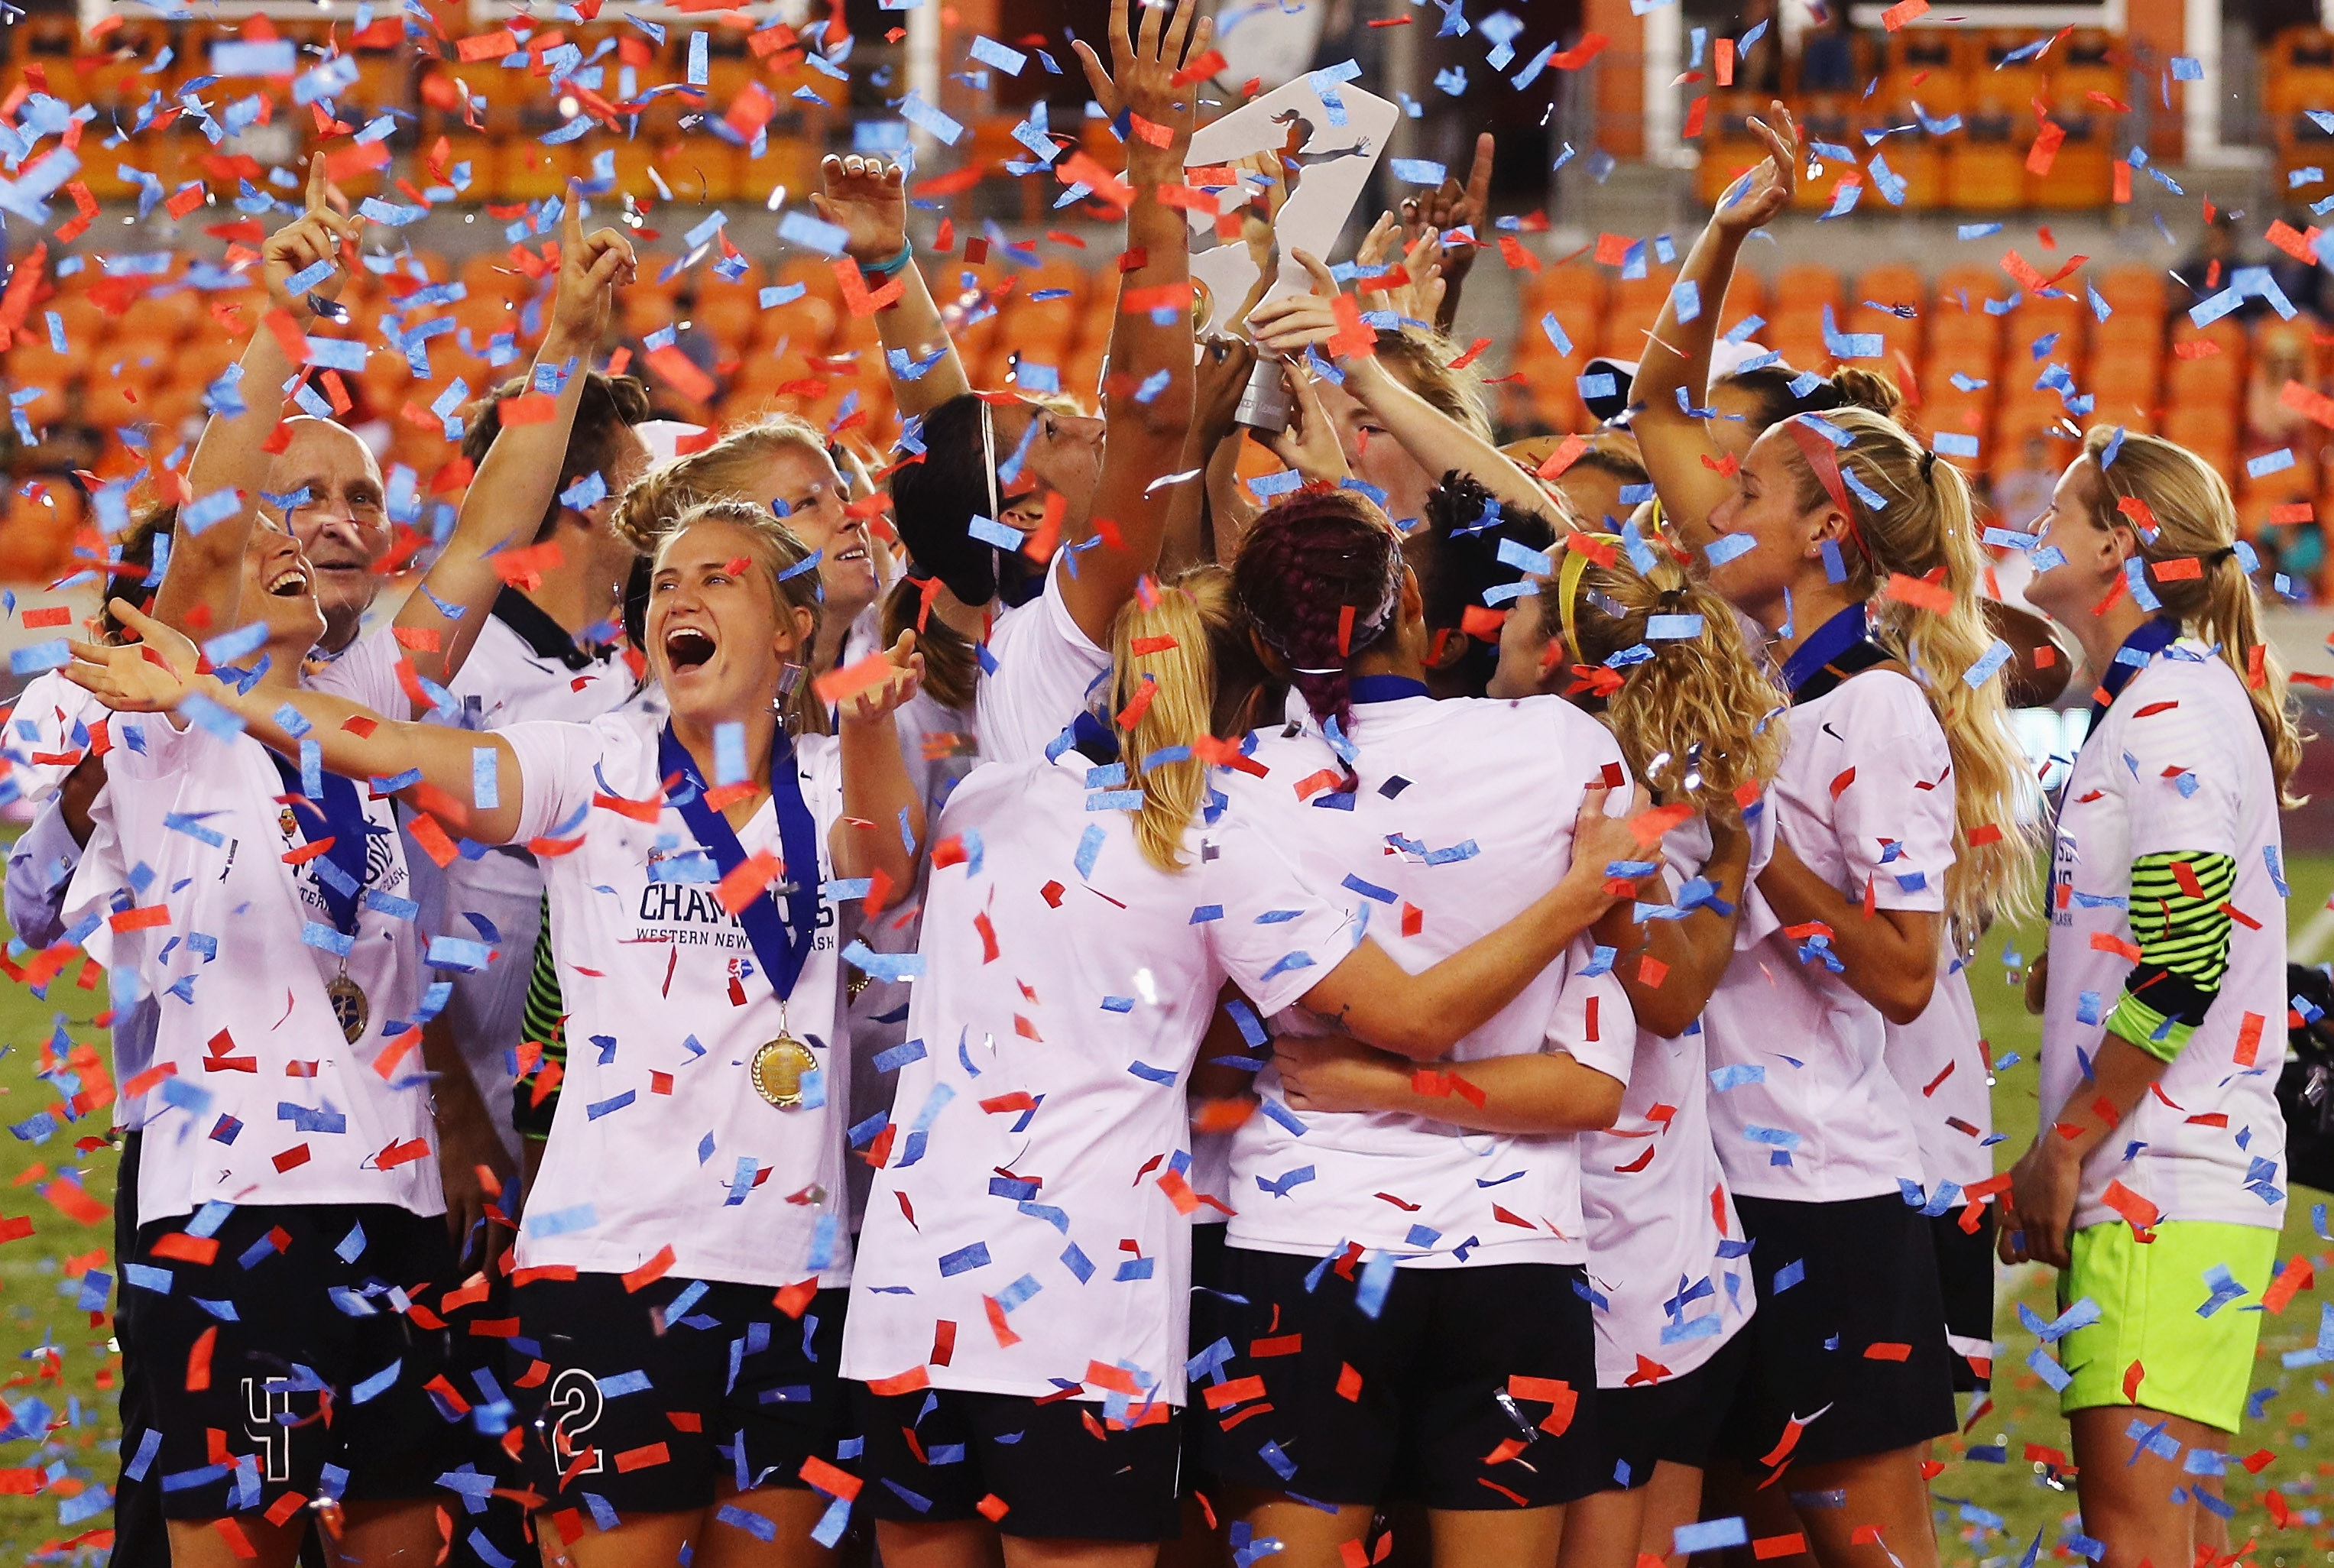 Members of the Western New York Flash celebrate after defeating the Washington Spirit in a shootout to win the 2016 NWSL Championship at BBVA Compass Stadium.